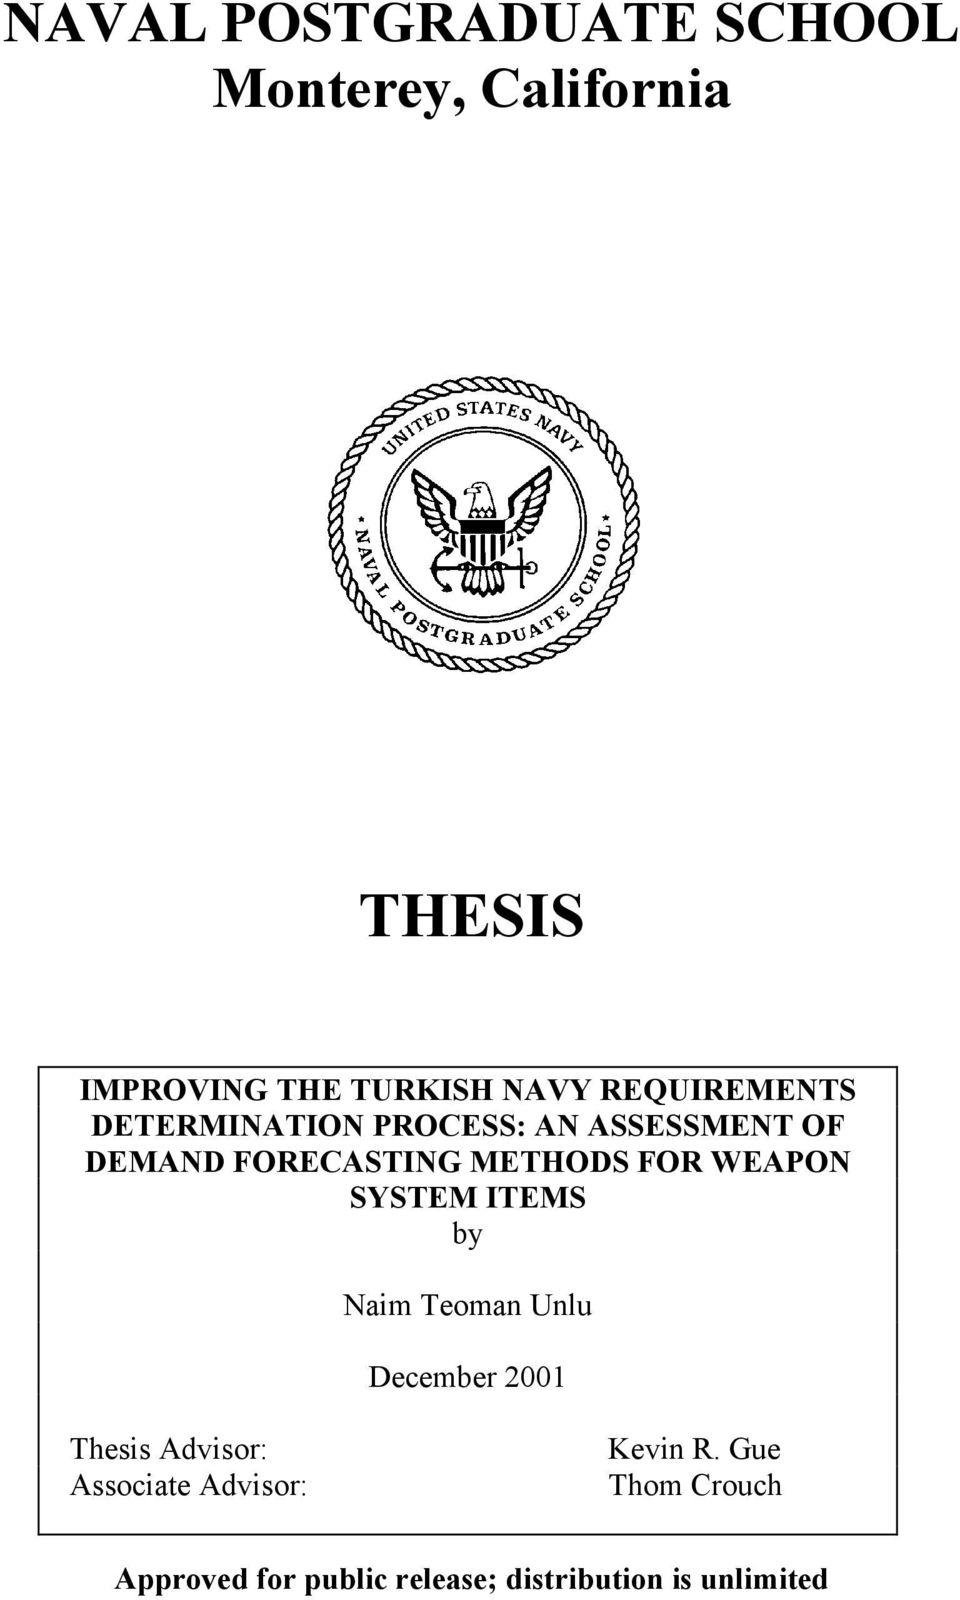 WEAPON SYSTEM ITEMS by Naim Teoman Unlu December 2001 Thesis Advisor: Associate